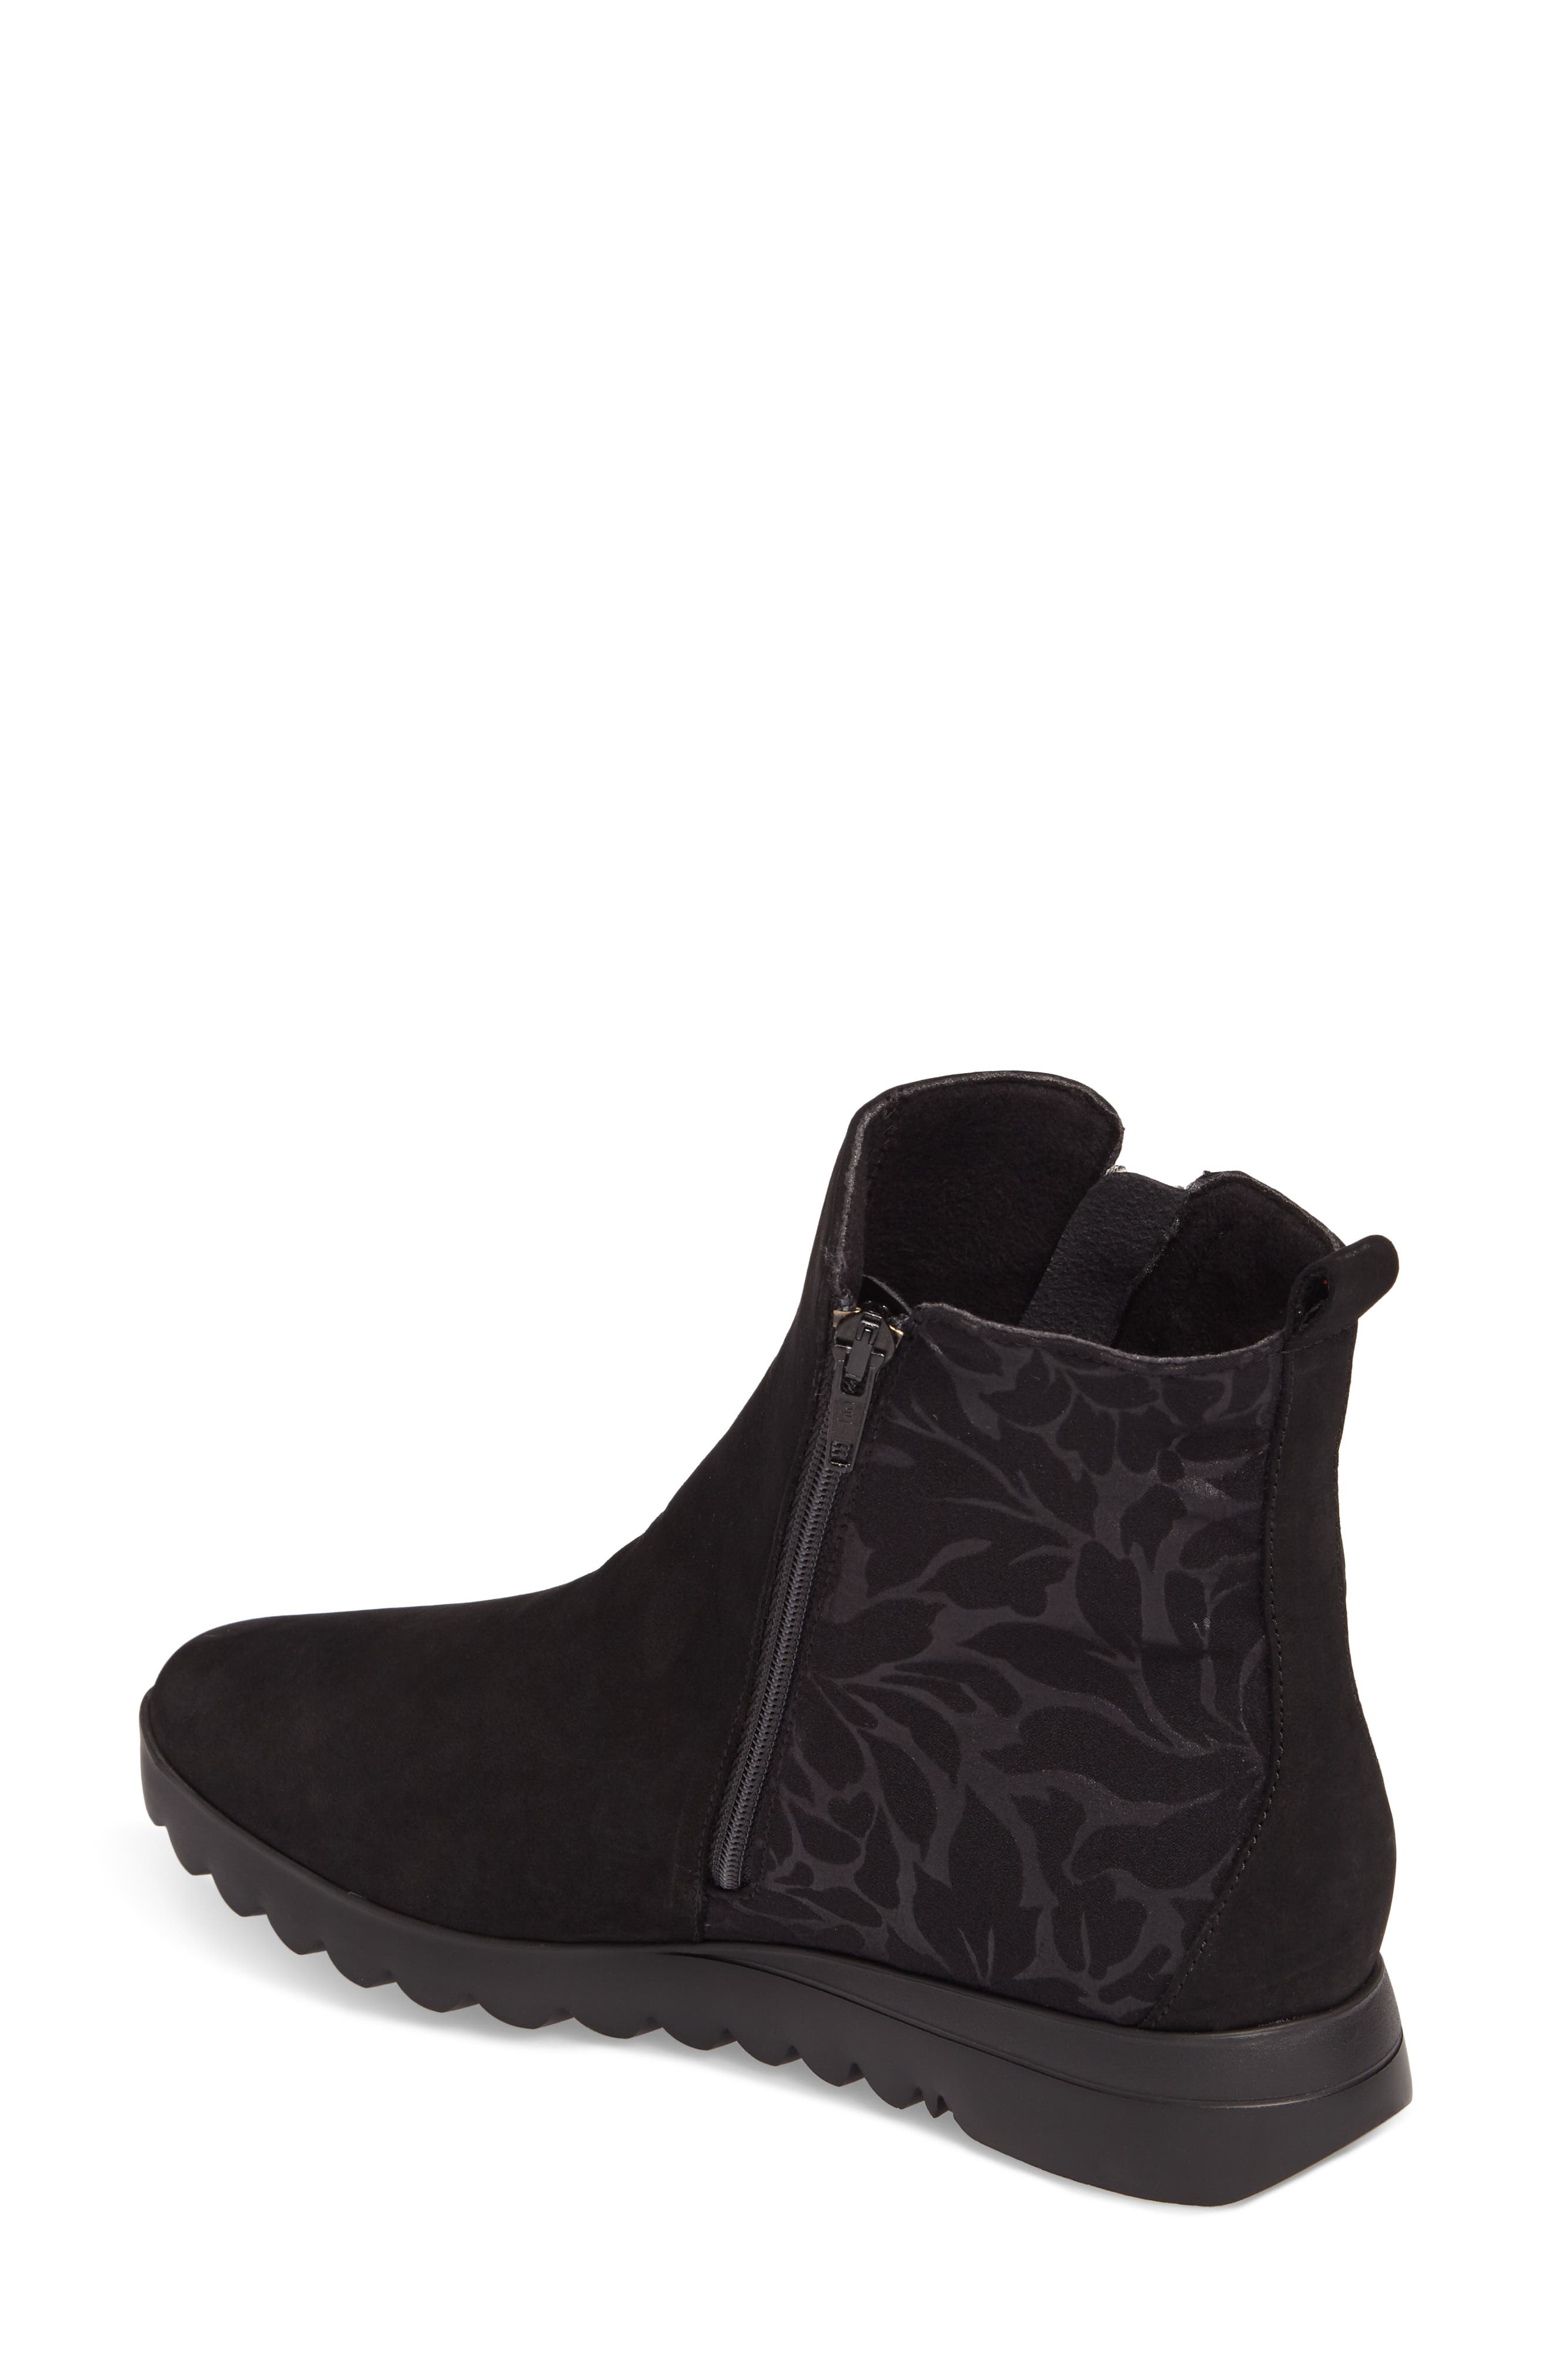 MUNRO, Ashcroft Bootie, Alternate thumbnail 2, color, BLACK NUBUCK